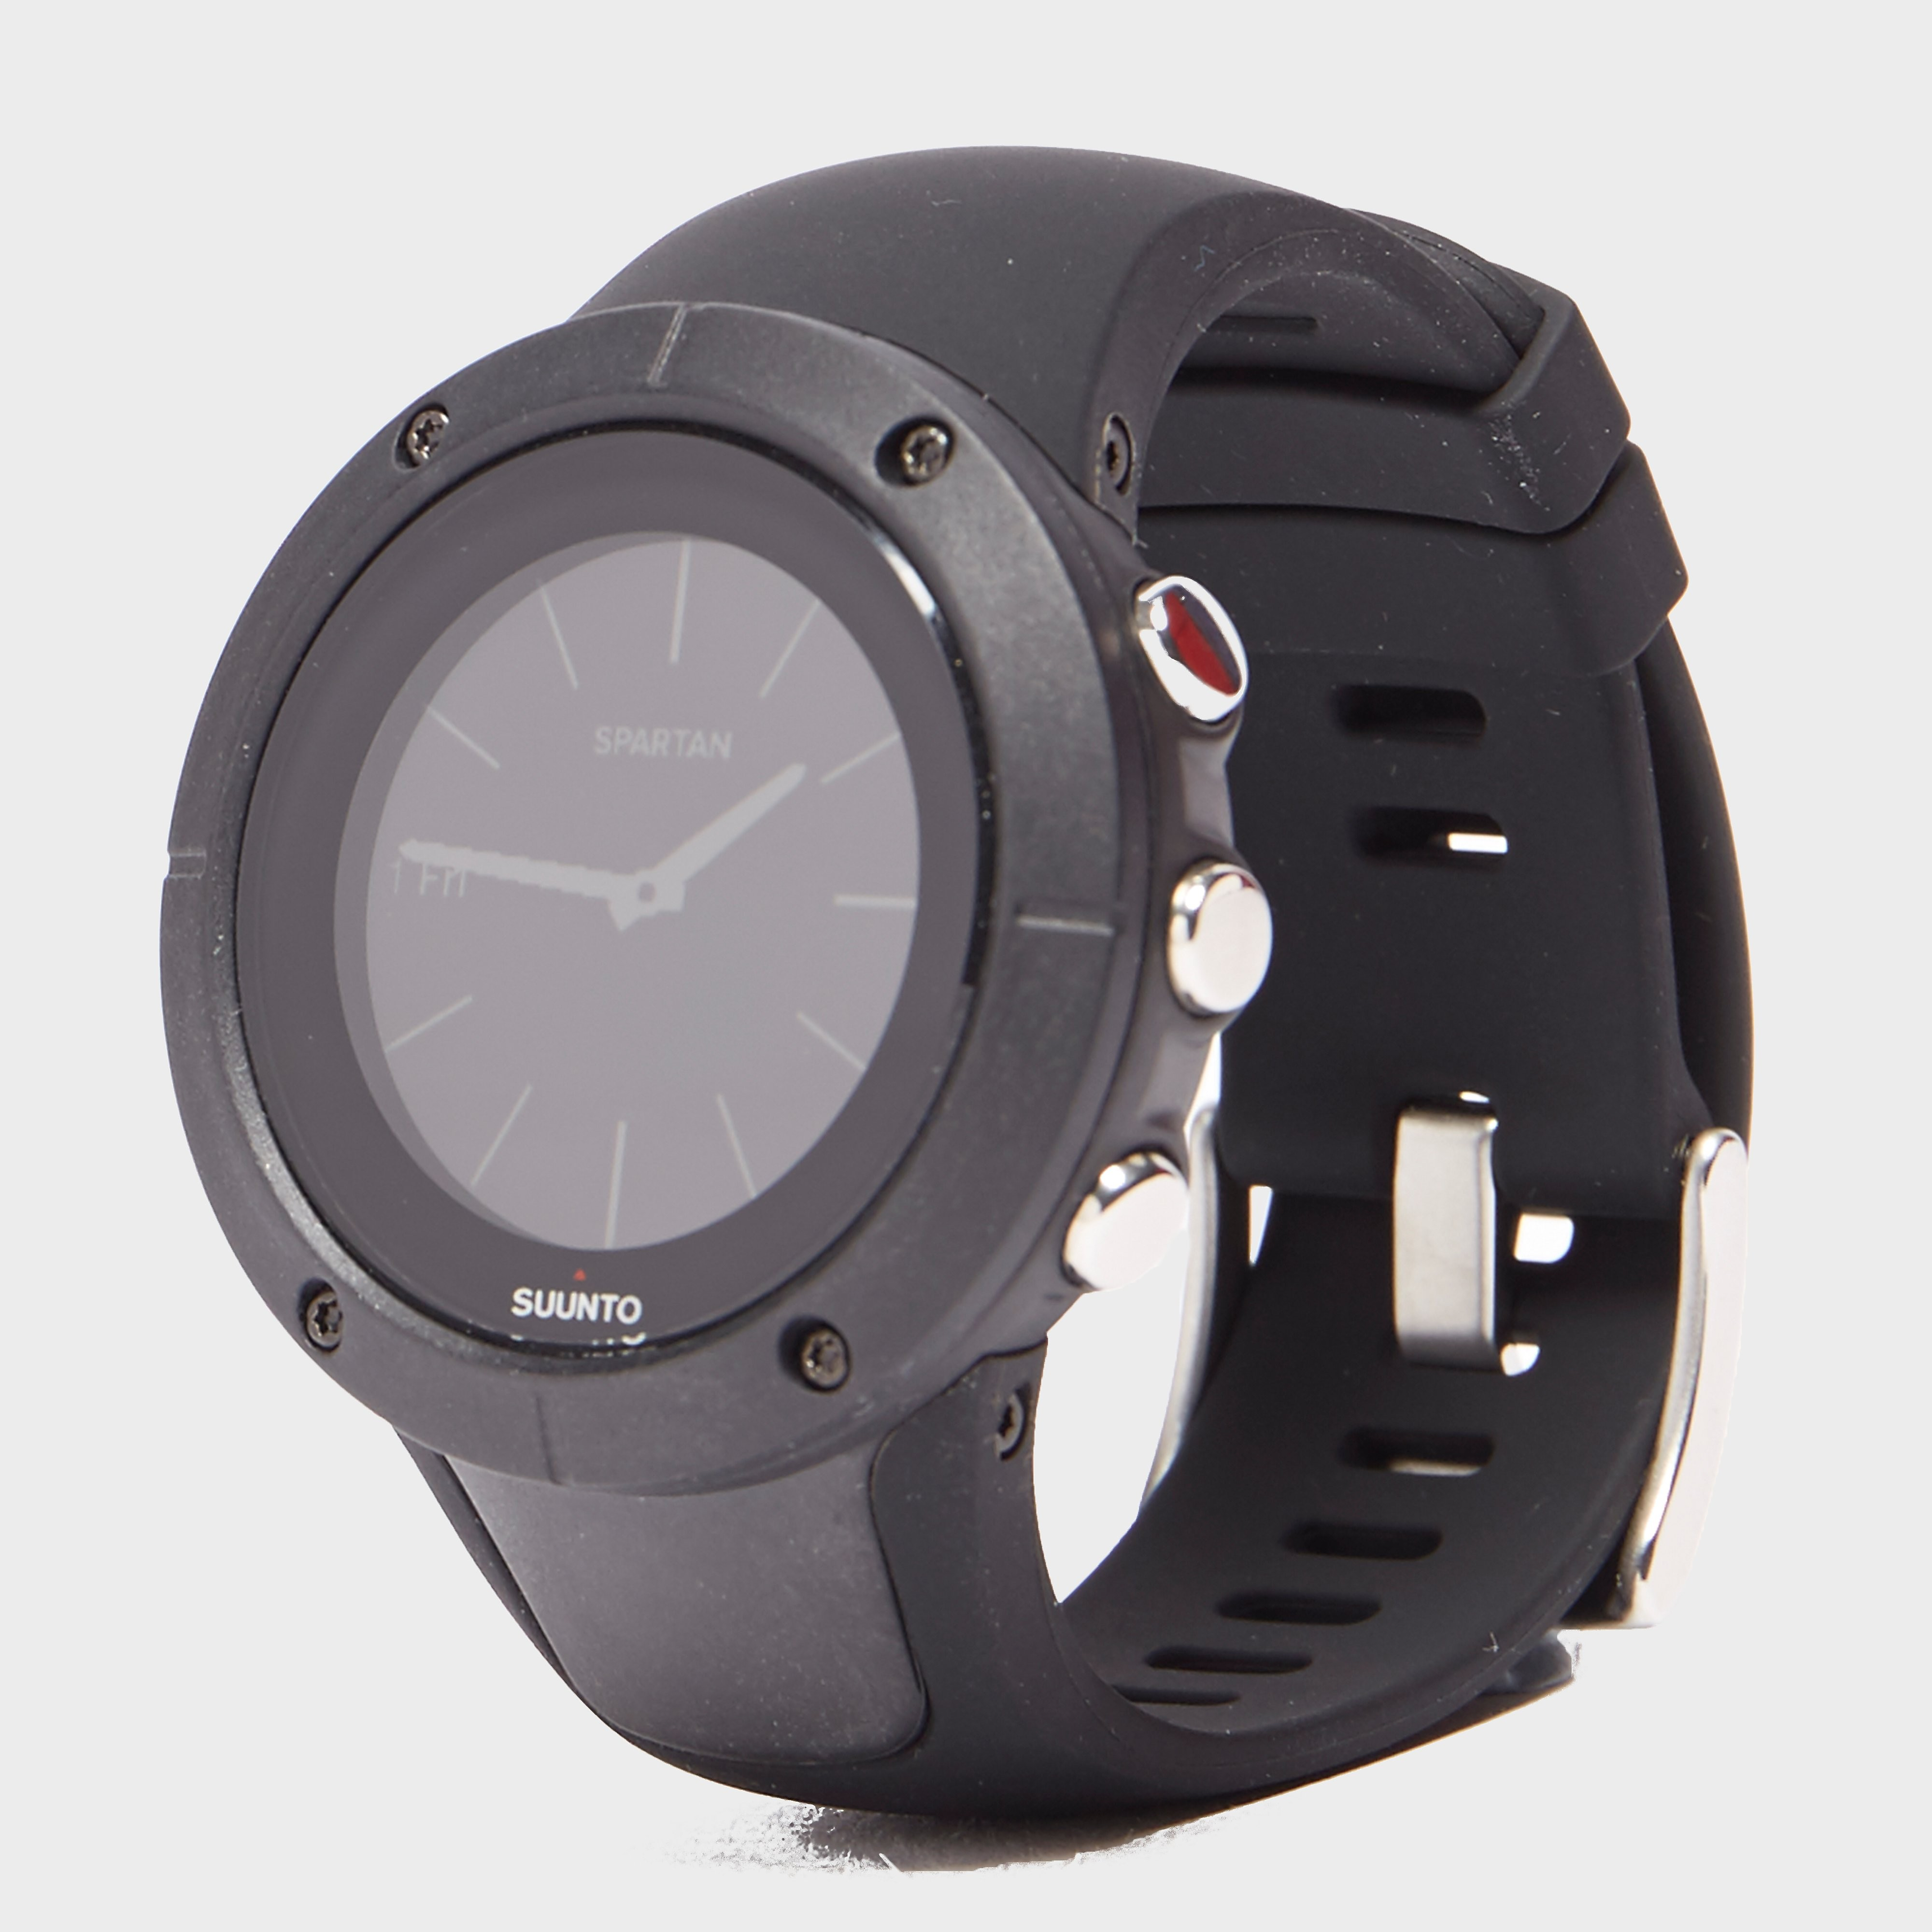 Suunto Spartan Trainer Wrist Watch